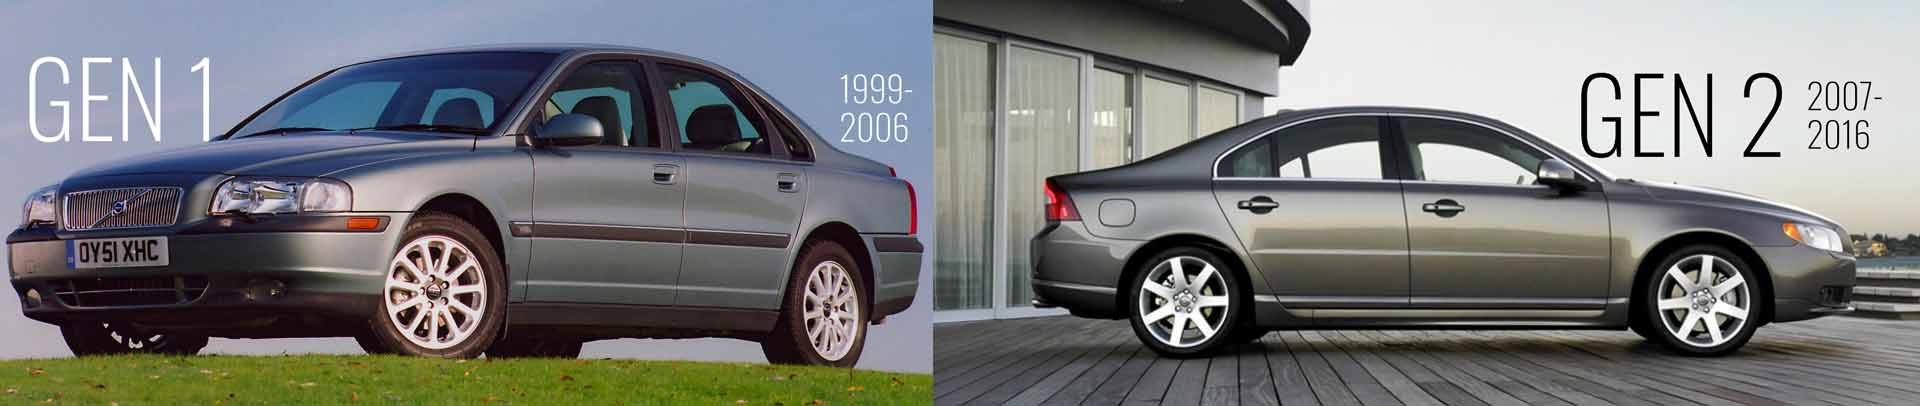 S80 Page 1999 S80 and 2009 S80